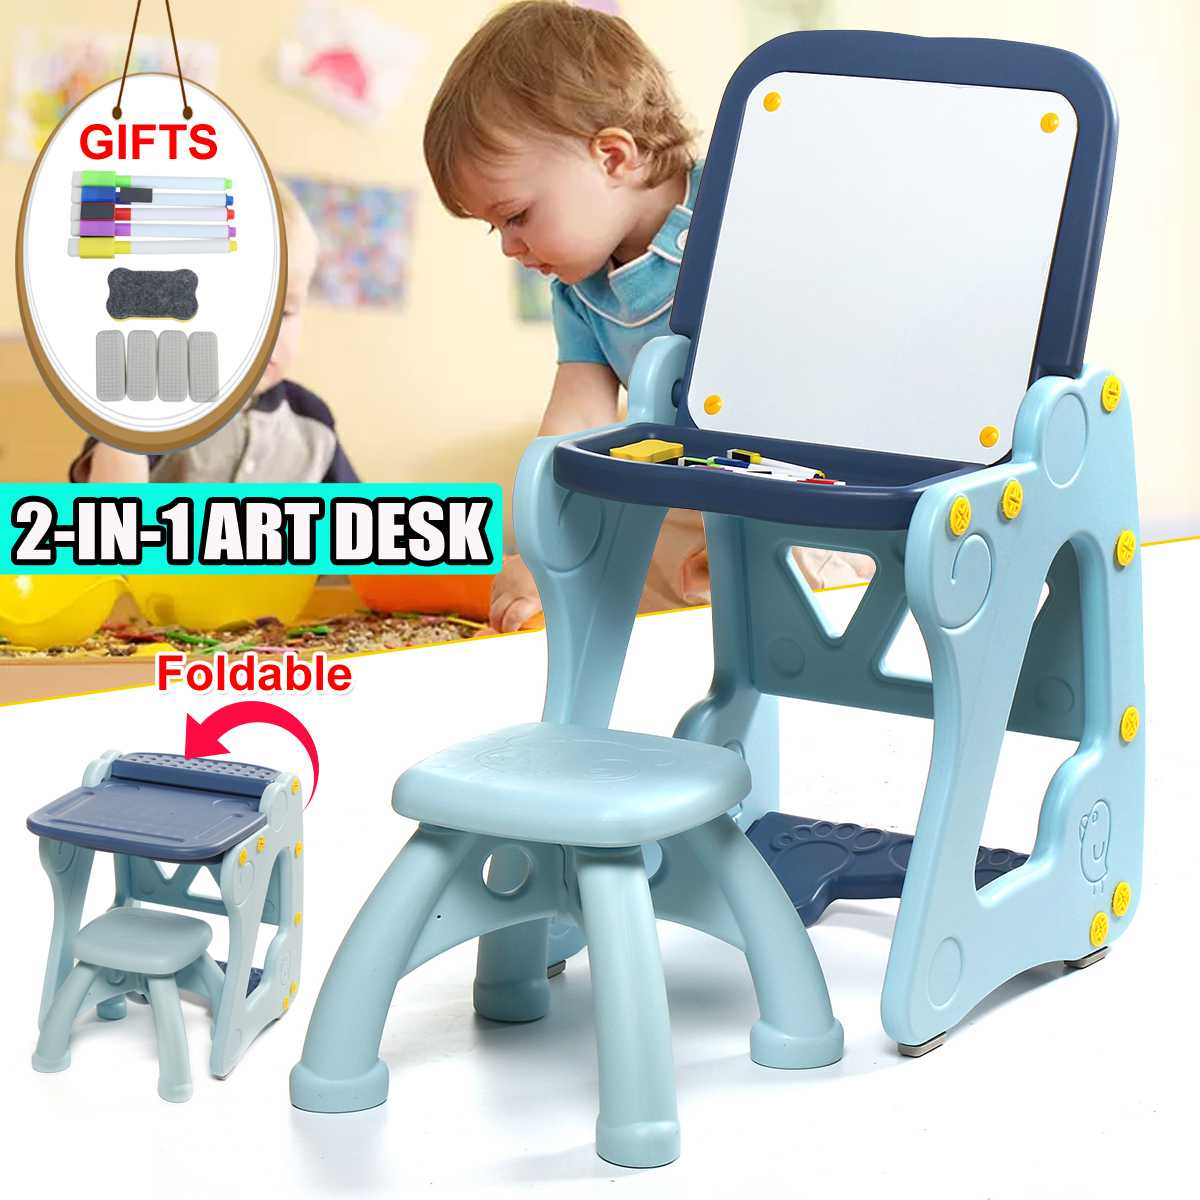 2 in 1 Art Desk Foldable Children Tables Adjustable Desk and Chair Combination Desktop Kid Writing board Drawing Easel blue